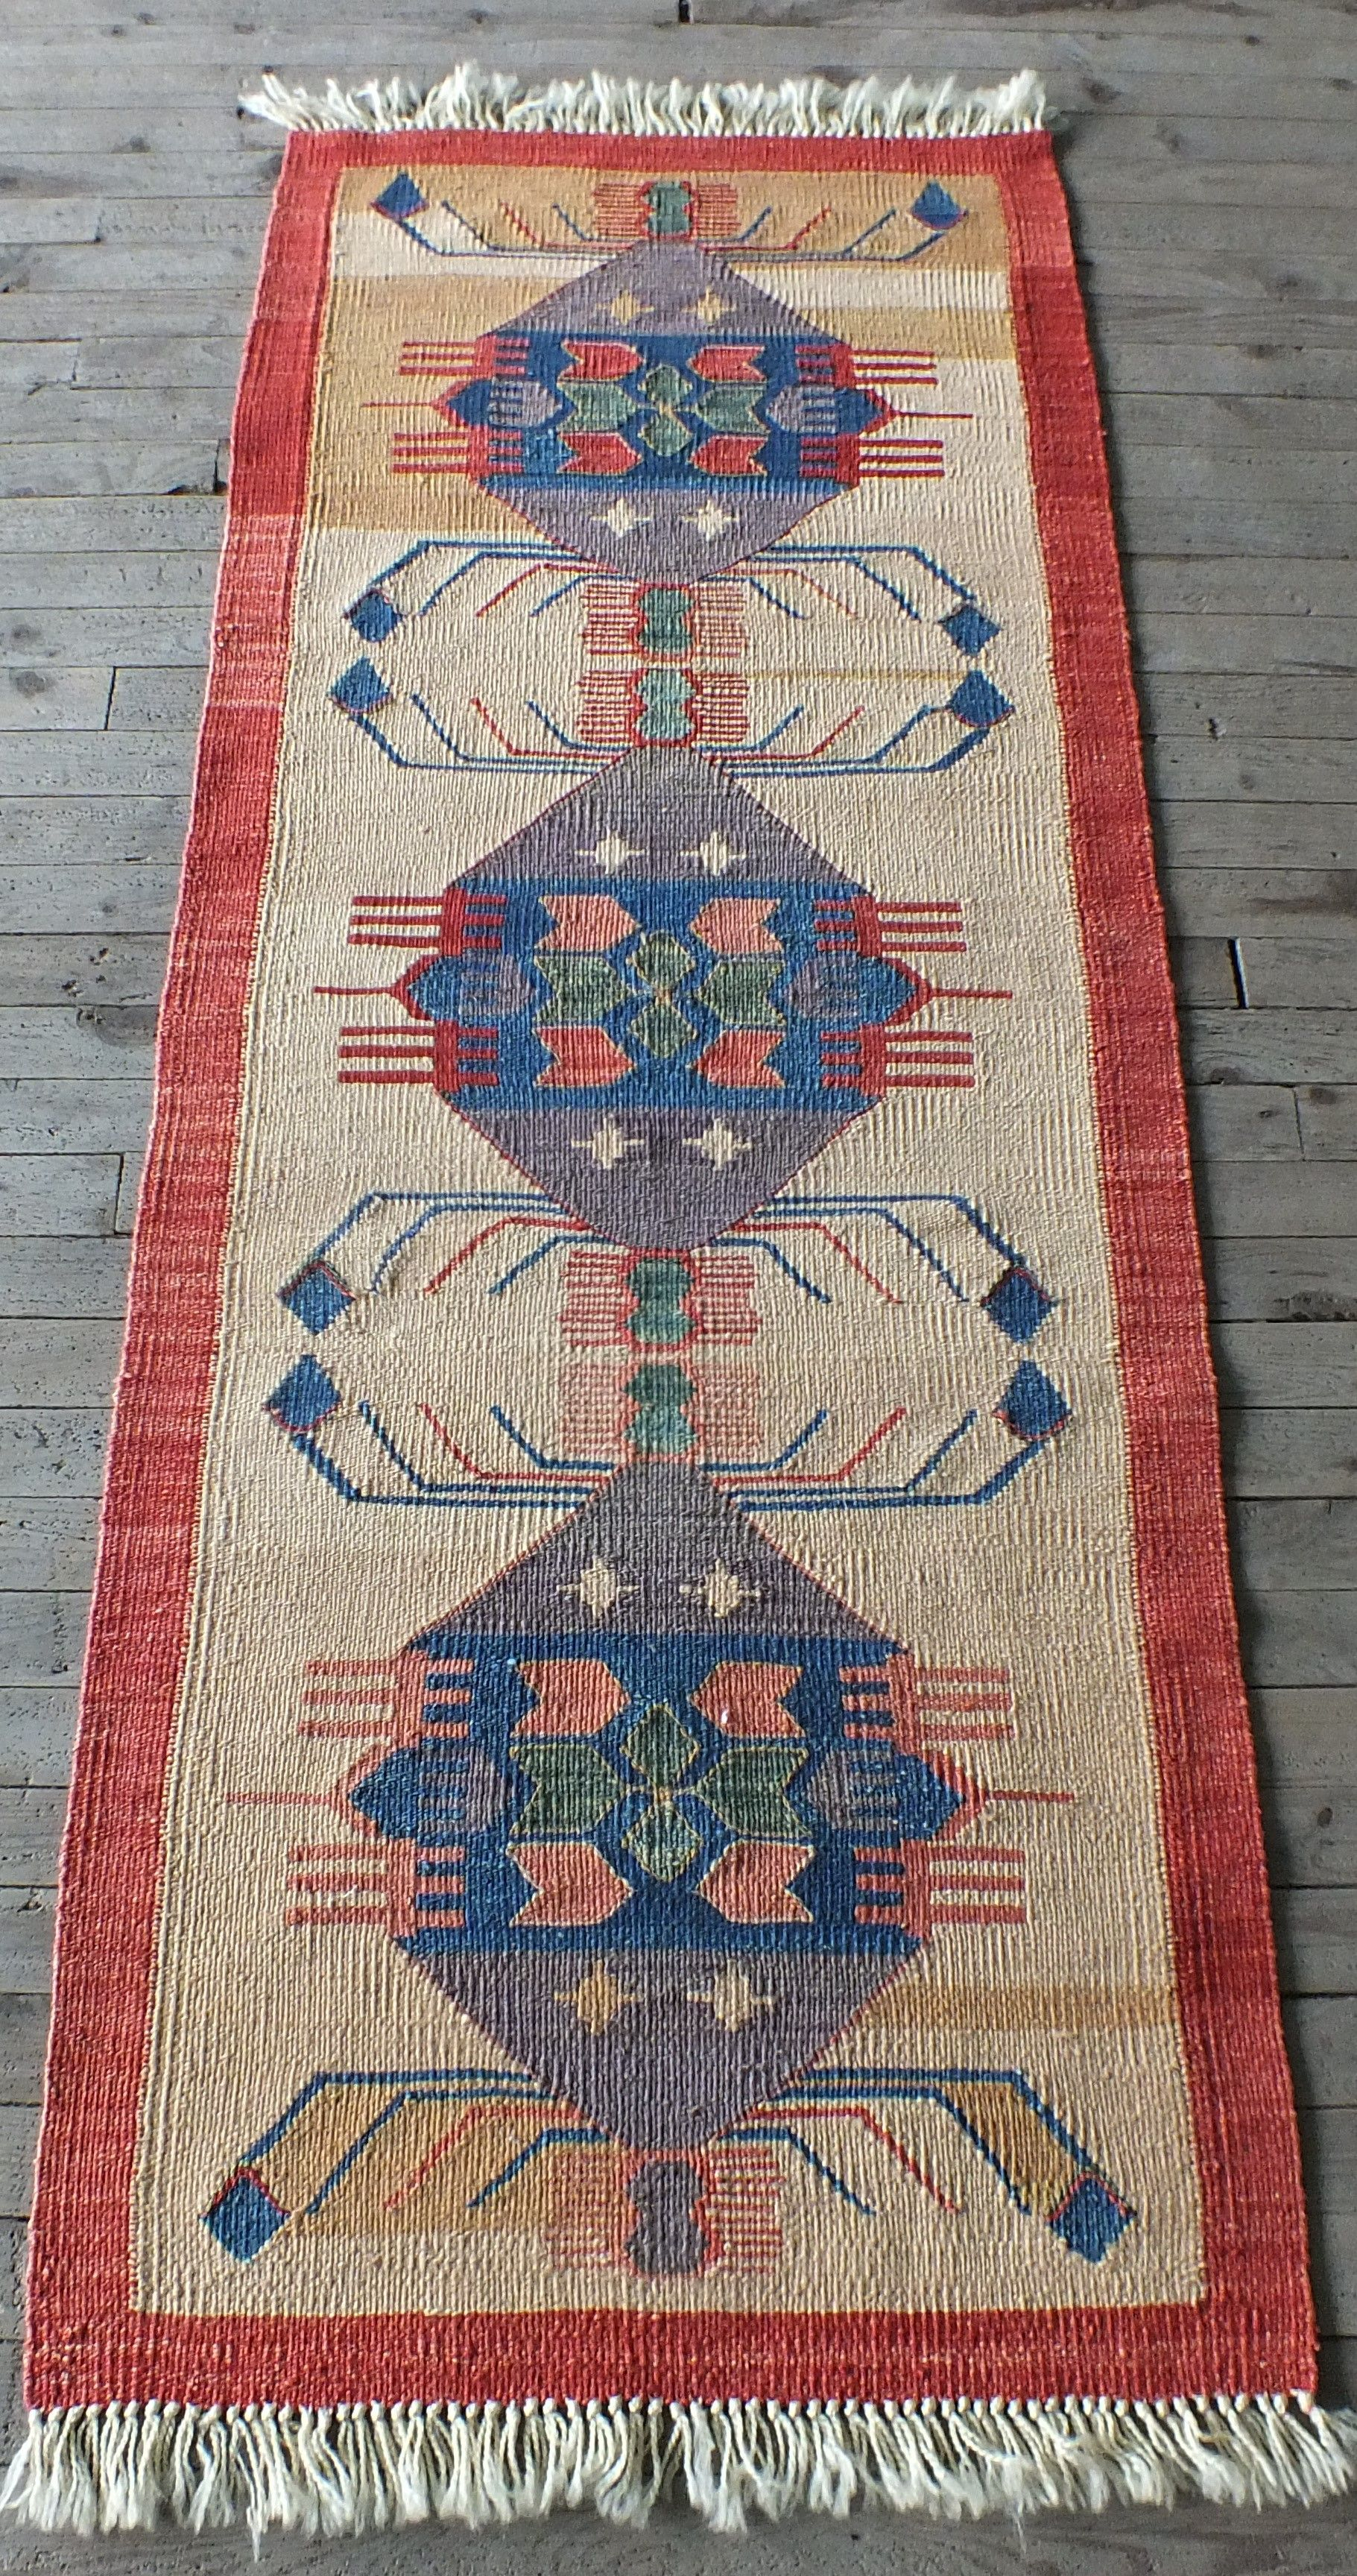 Kilim Rug Vintage Turkish Authentic Design Small Runner Red Bordered Light Yellow Blue Hall Art Beauty